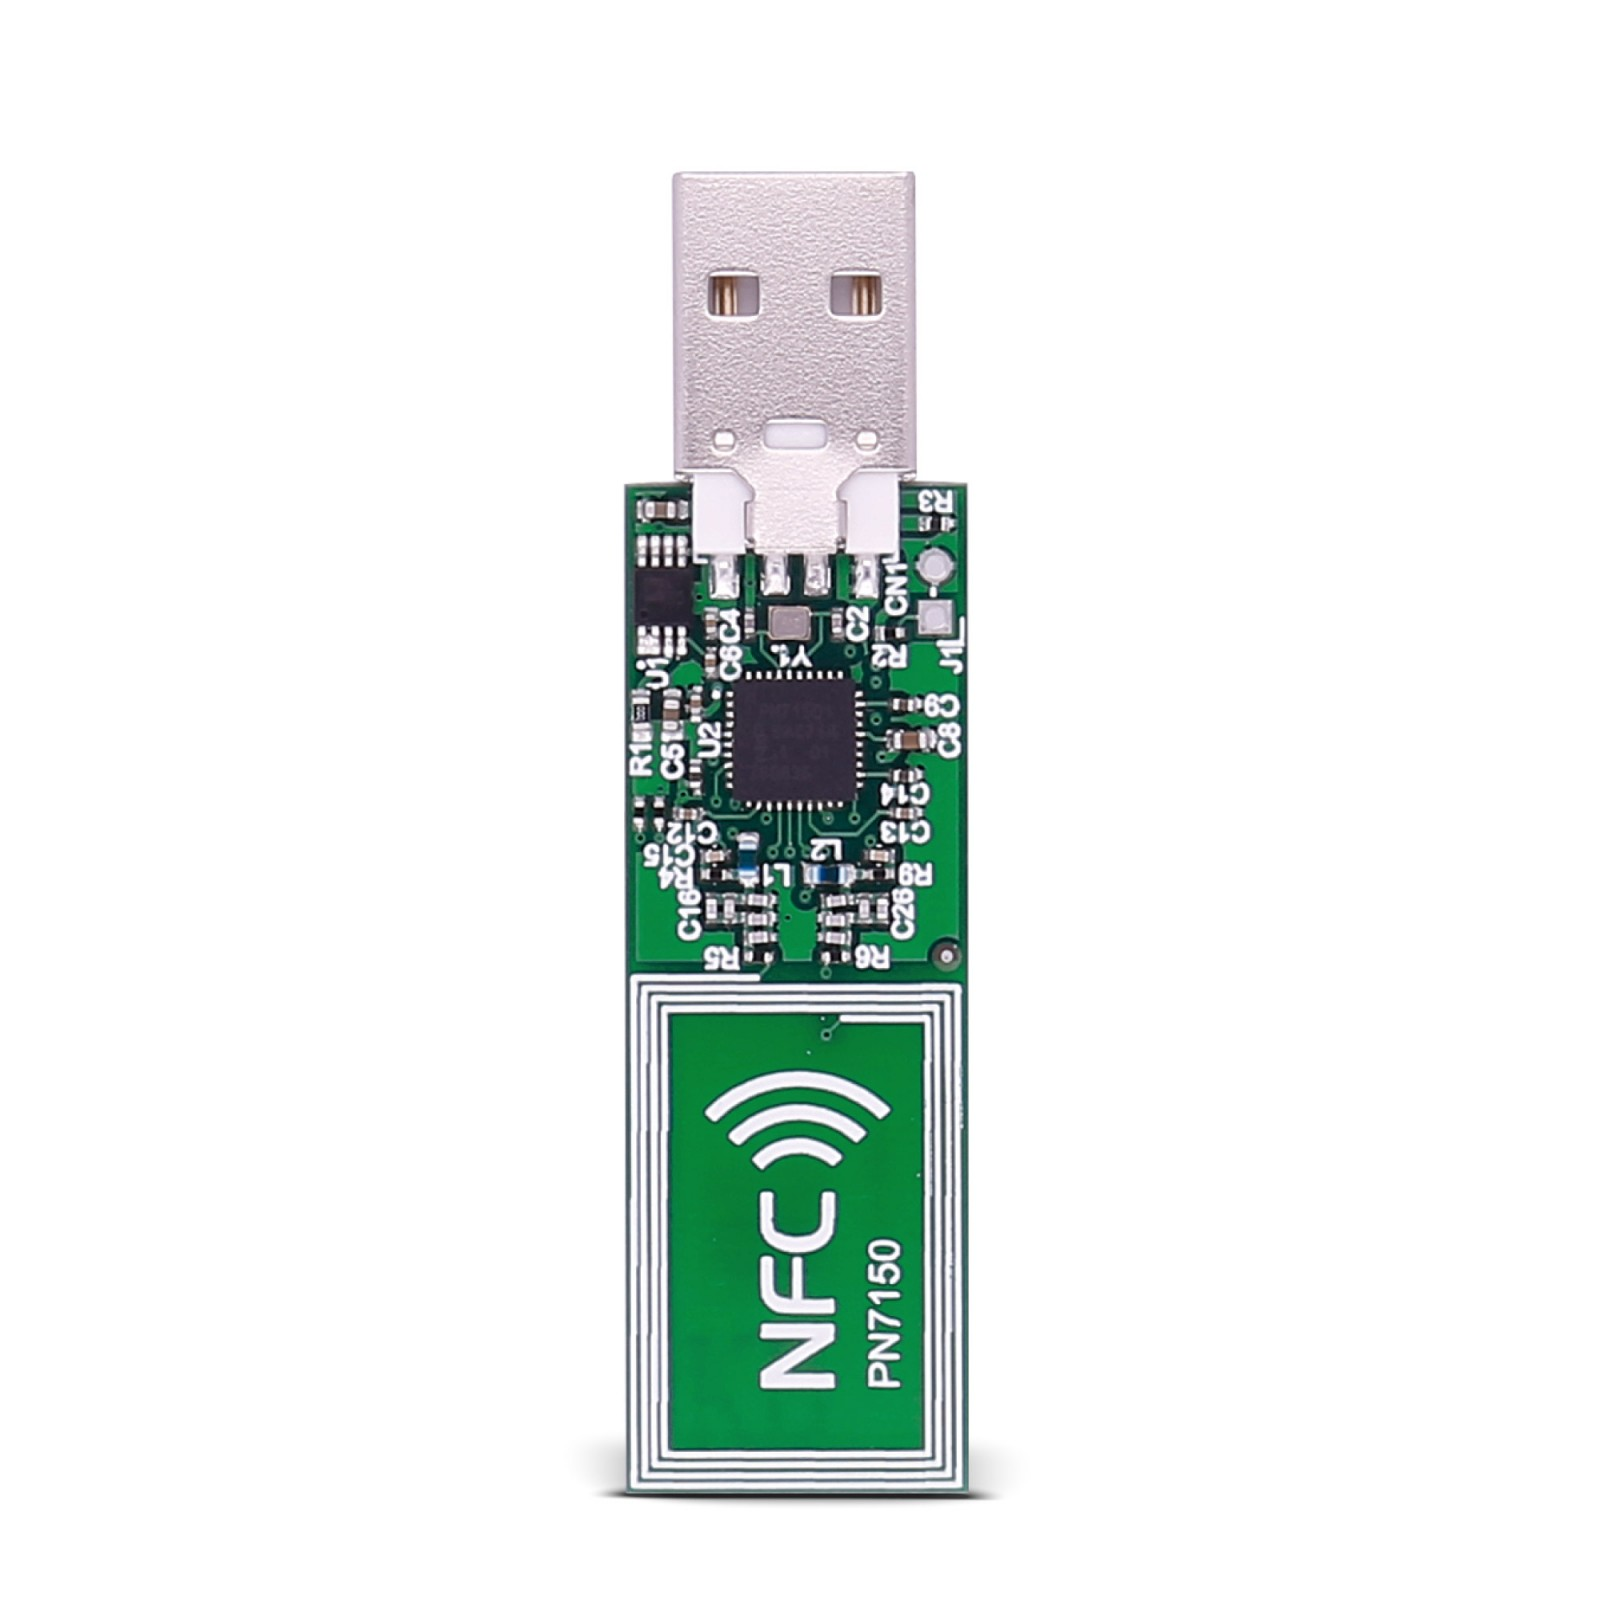 Nfc Usb Dongle Reader Writer Based On Nxps Pn7150 Best Price Flash Drive Circuit Board Buy Mgctlbxnmzp Mgctlbxv5112 Mgctlbxlc Mgctlbxpprestashop